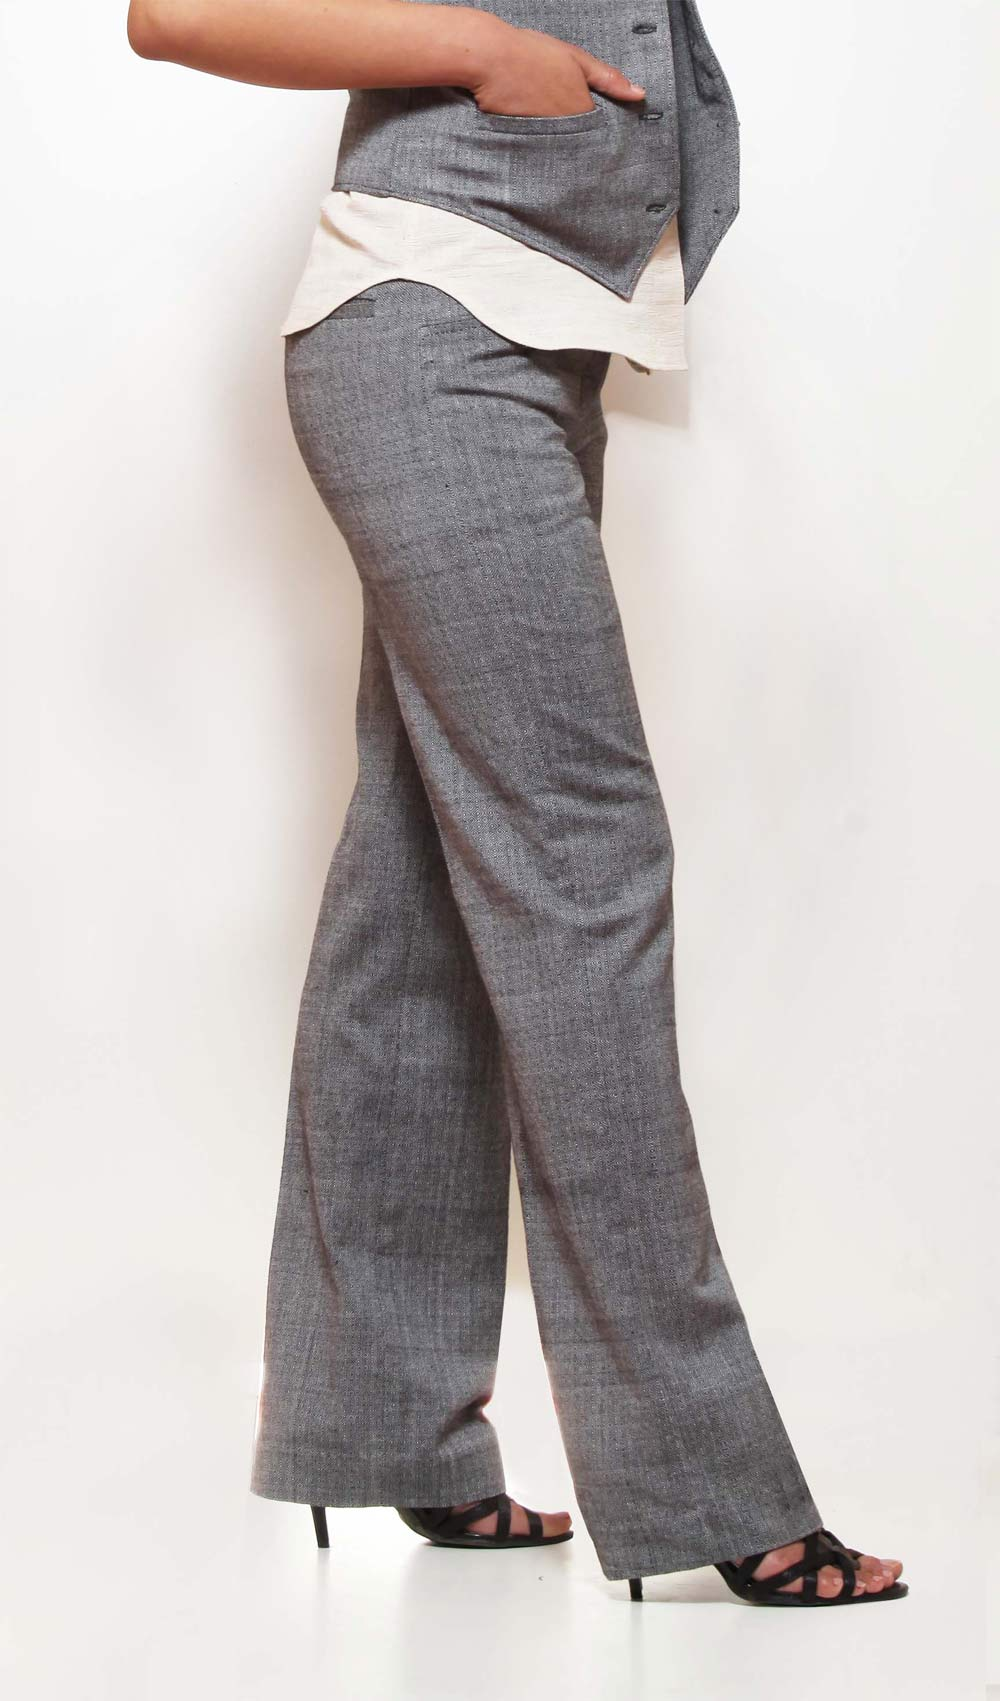 Relax Fit Handwoven Trouser made from 100% cotton designed by Khumanthem Atelier